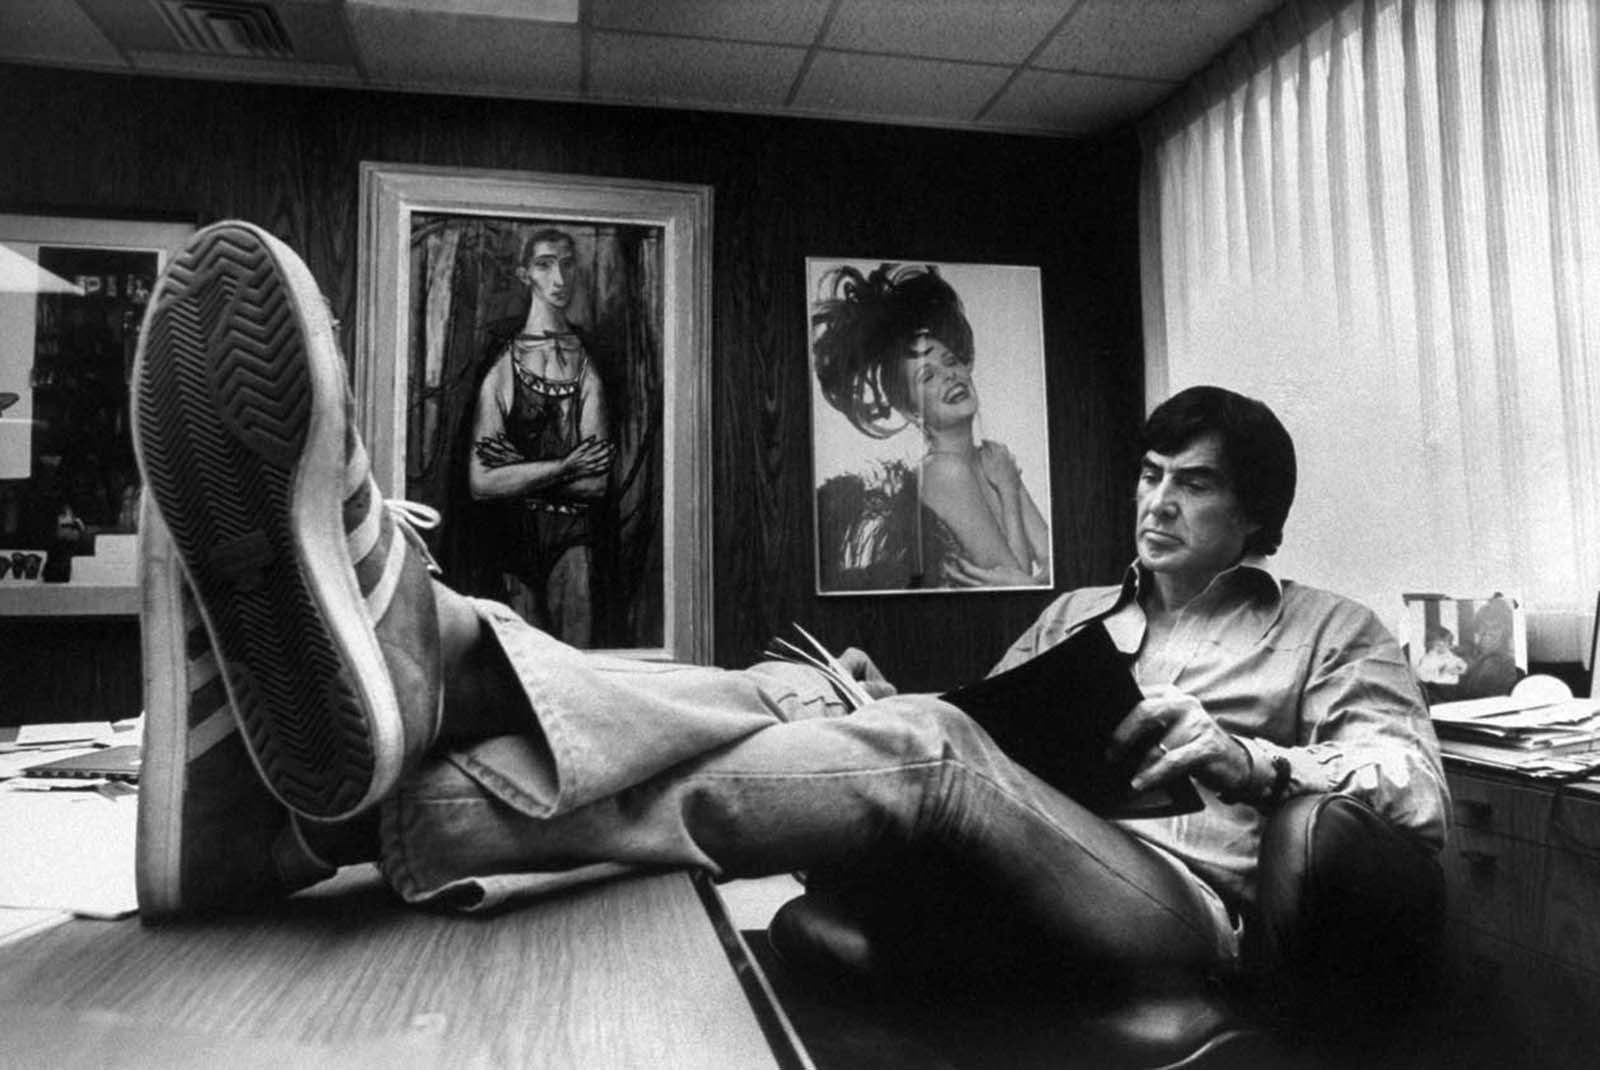 John DeLorean reading in his home office. 1974.